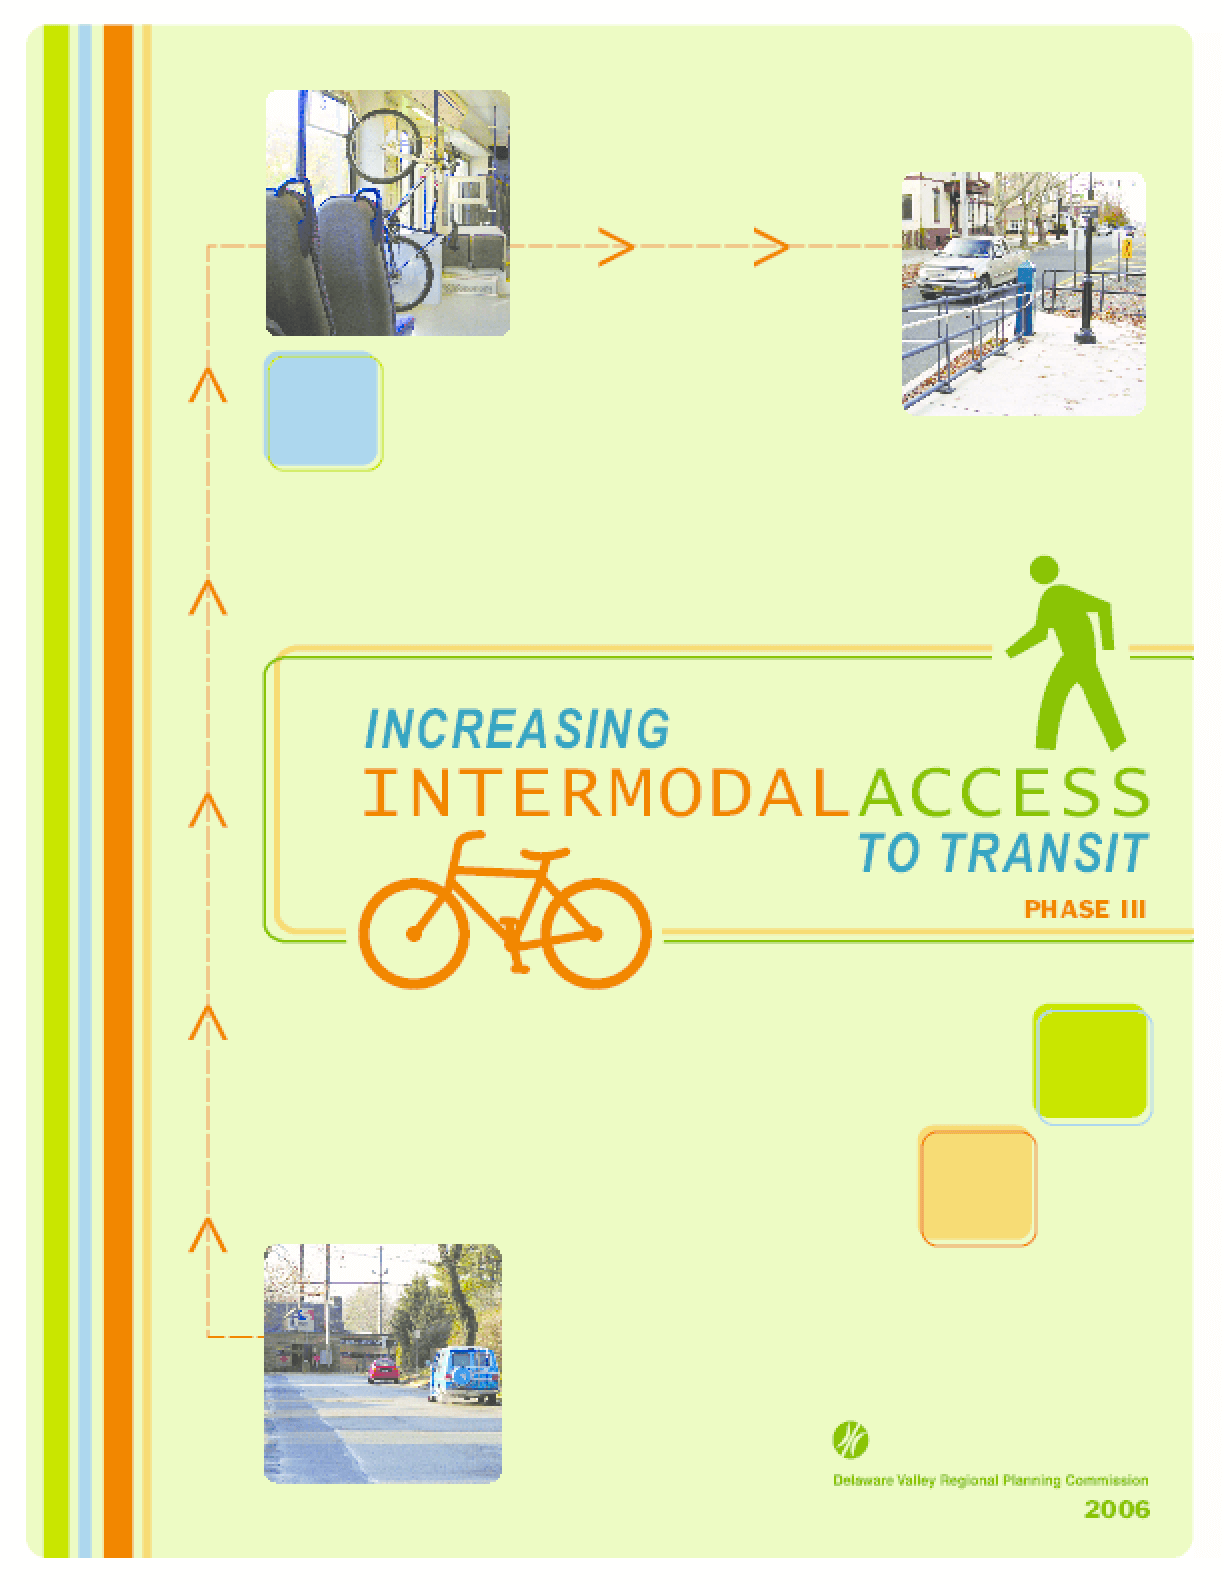 Increasing Intermodal Access to Transit - Phase III